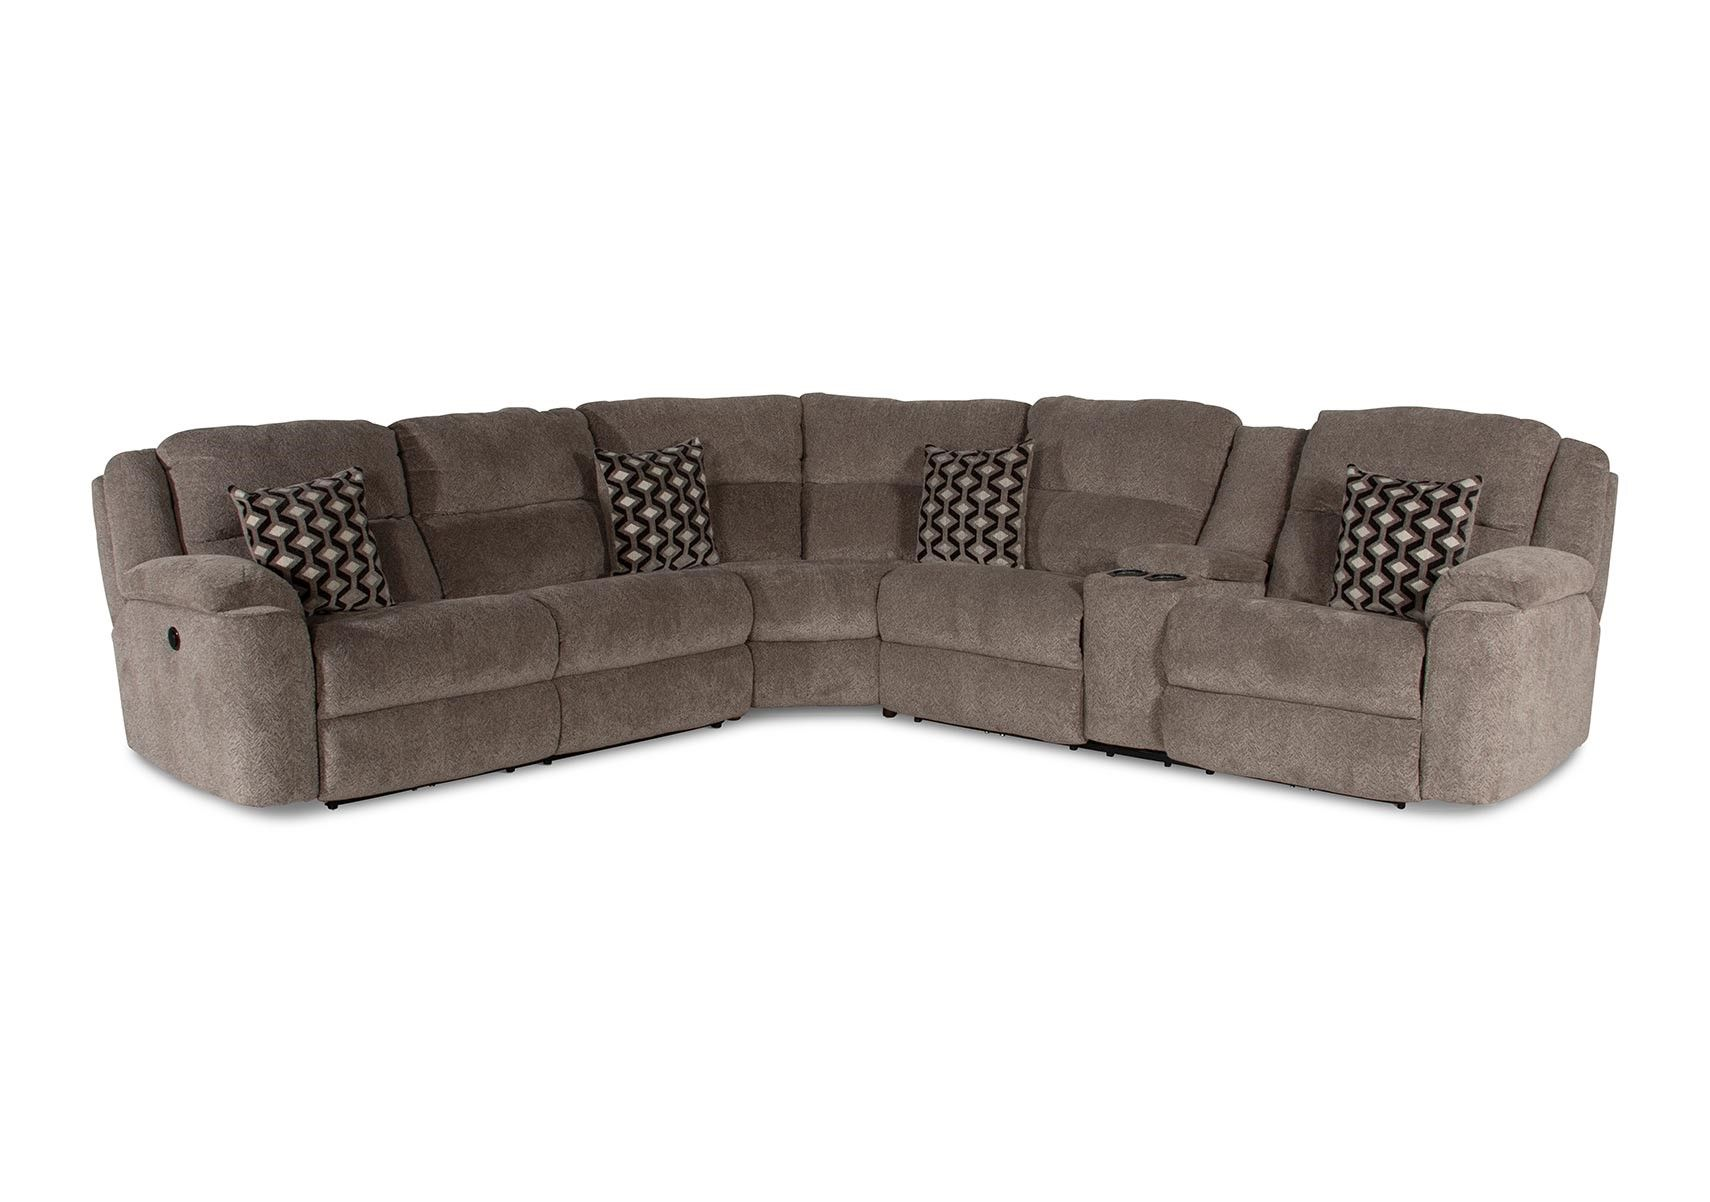 Lacks Catalina 3 Pc Reclining Sectional With Power Reclining